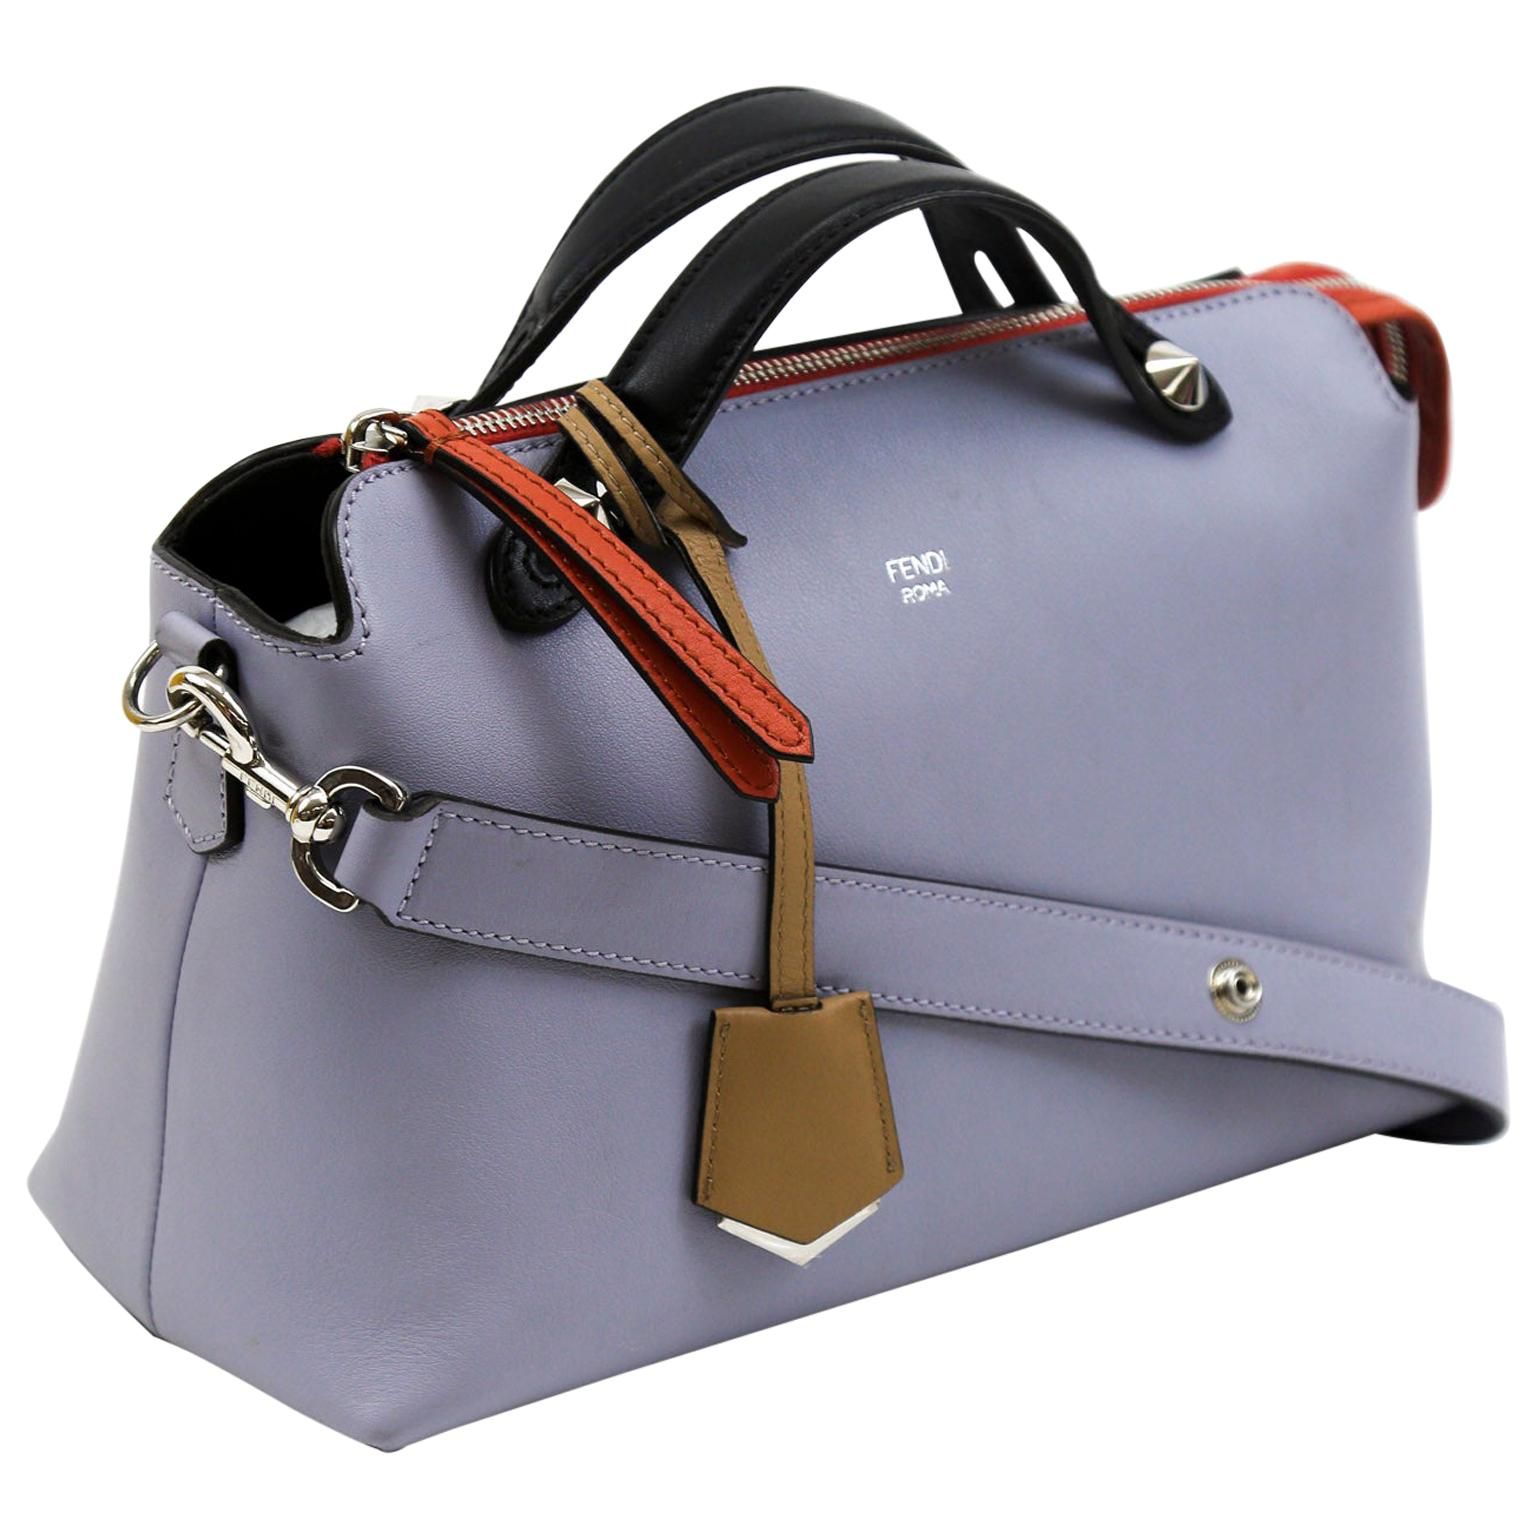 Fendi By The Way Lilac Small Leather Cross-body Satchel Bag